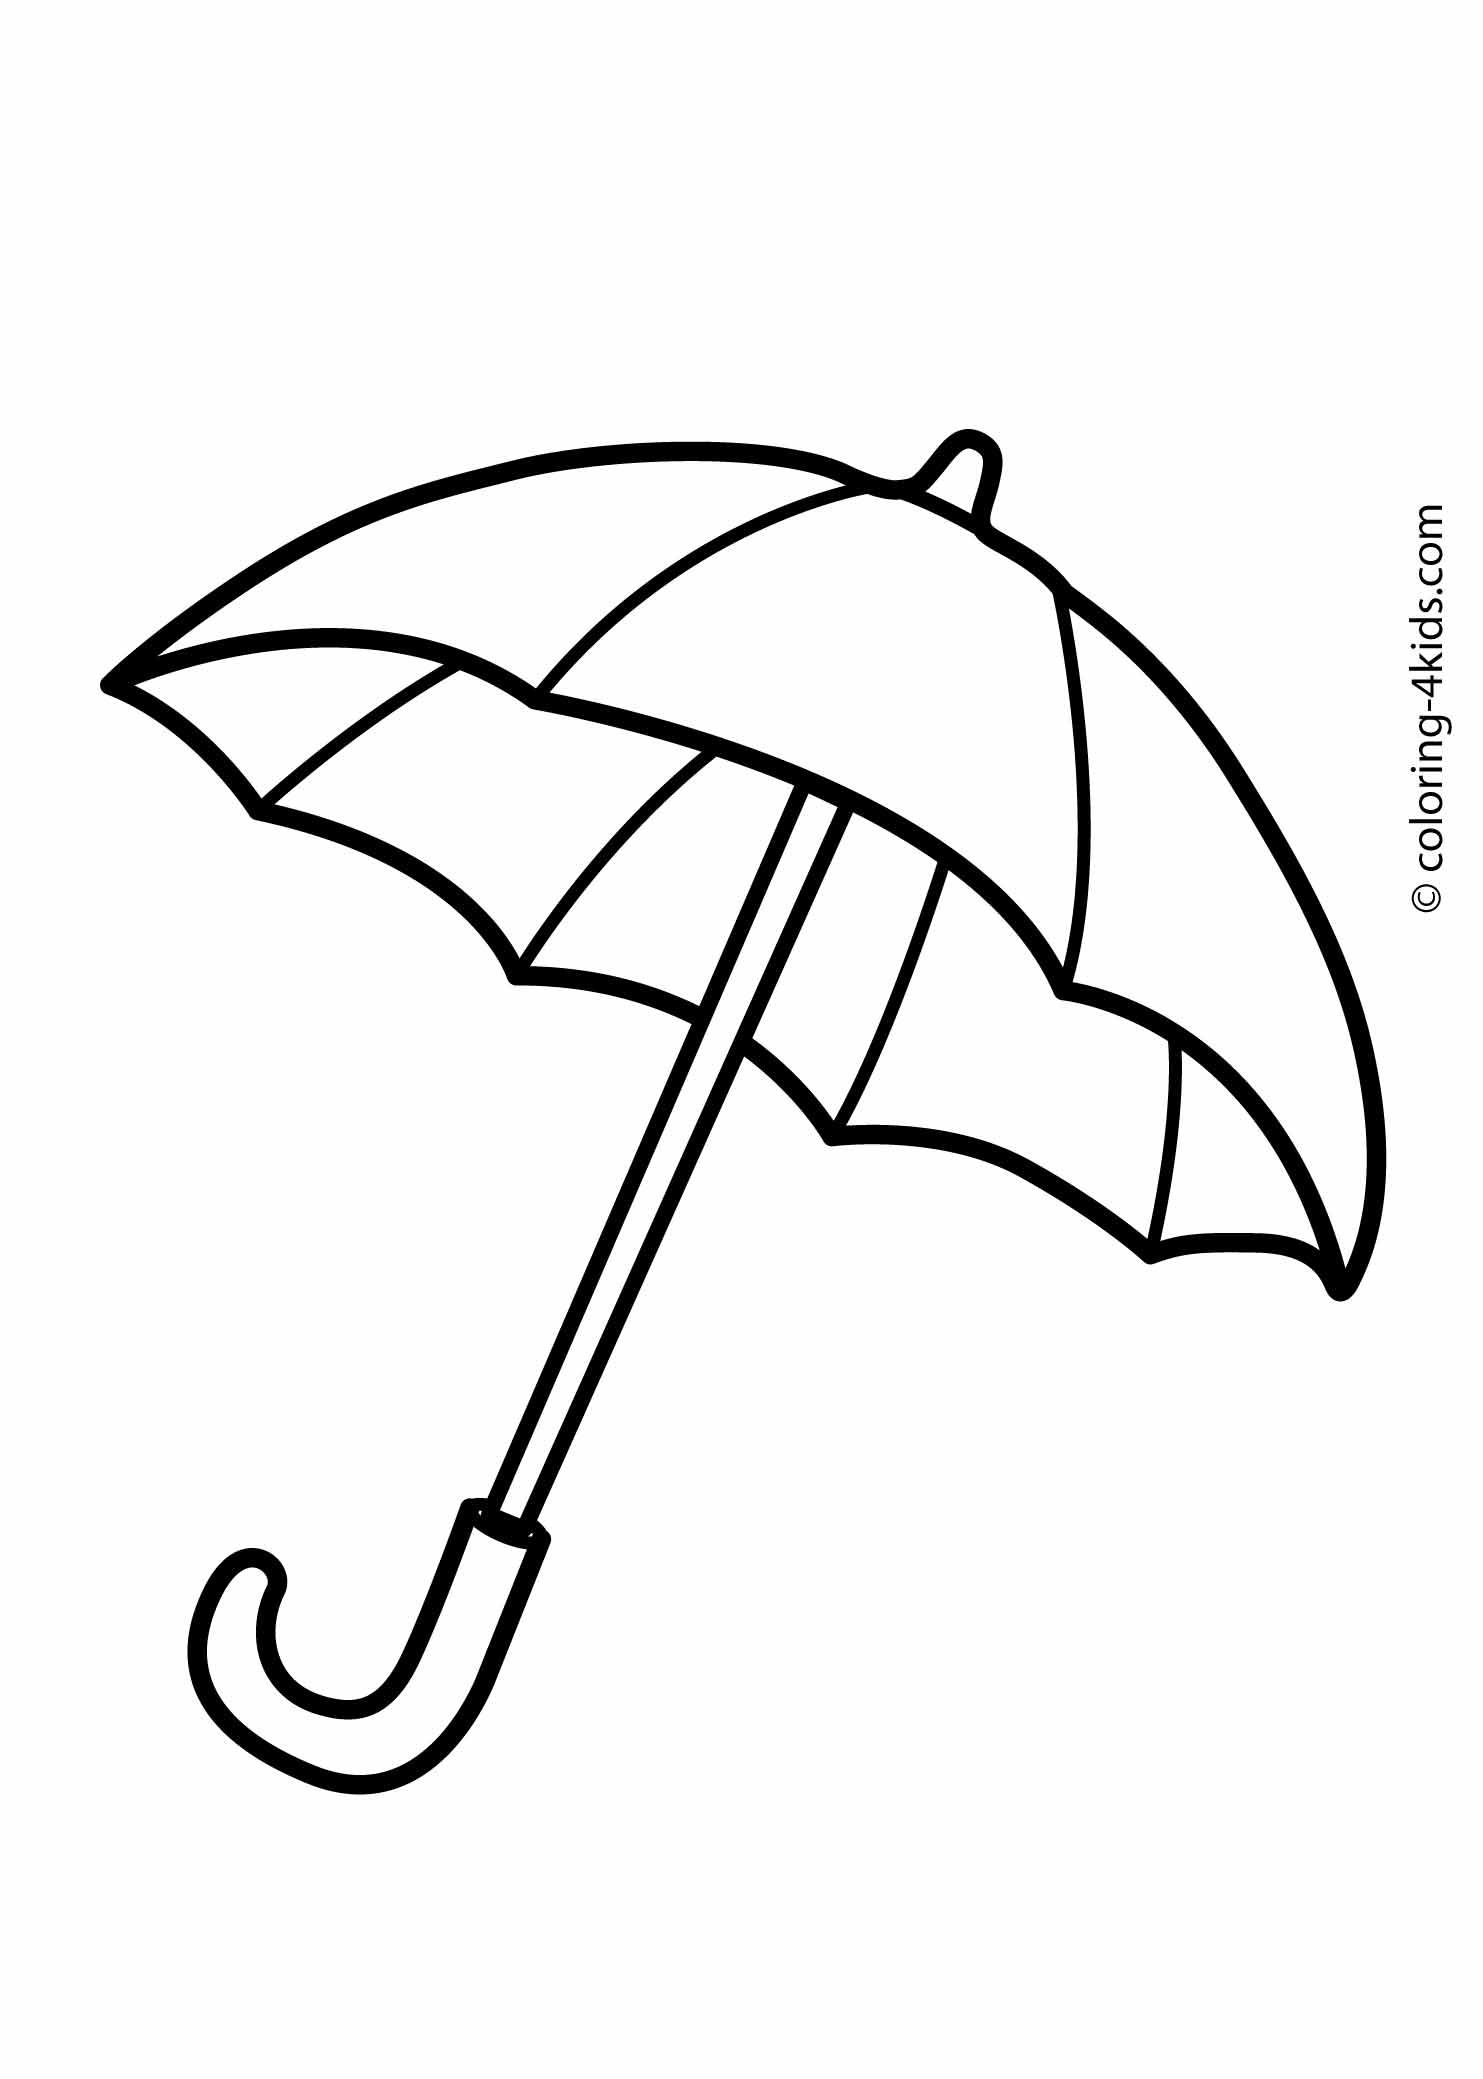 Umbrella coloring pages Coloring pages Pinterest Drawings